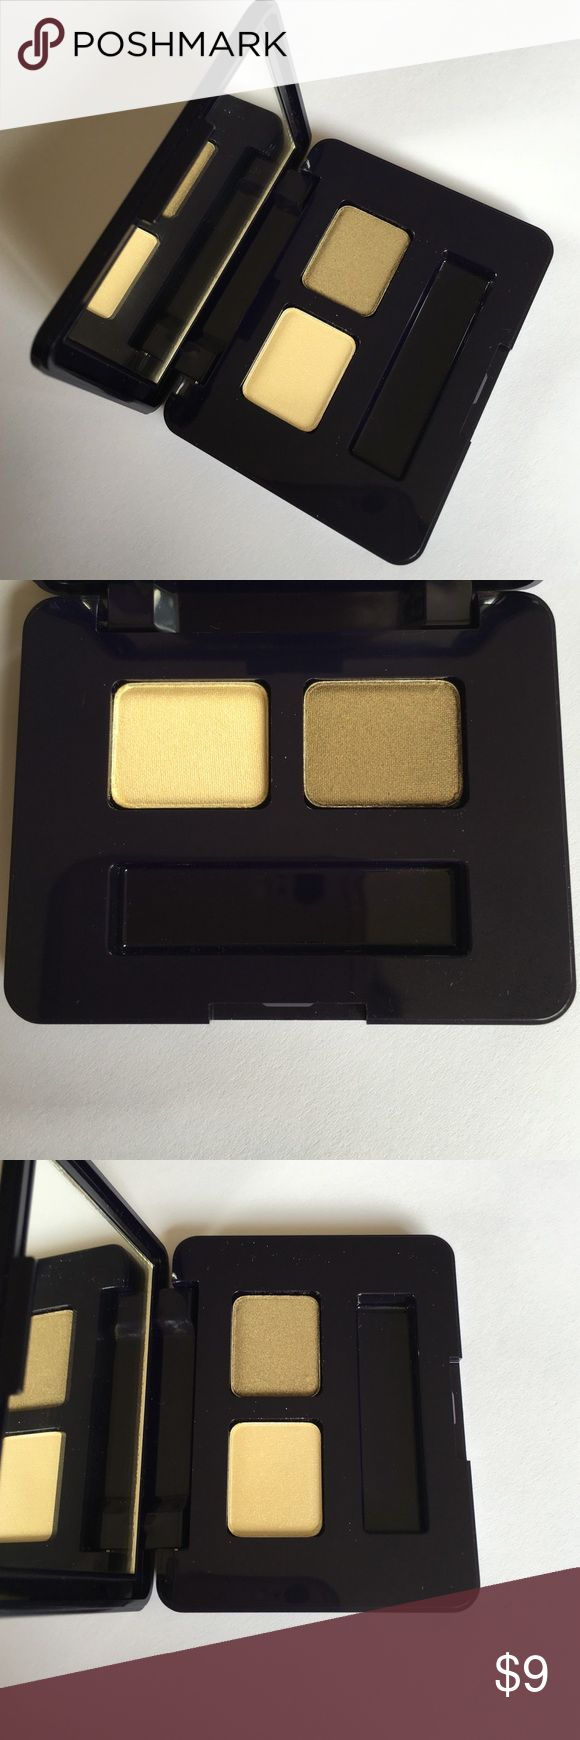 This is Free Gift Estée Lauder Duo Green Eyeshadow This is a free gift with any purchase from my closet. Brand new, except for missing applicator. Listing is for Estée Lauder duo eye shadow. Color is called: #04 Sage (light and dark color green) Estee Lauder Makeup Eyeshadow